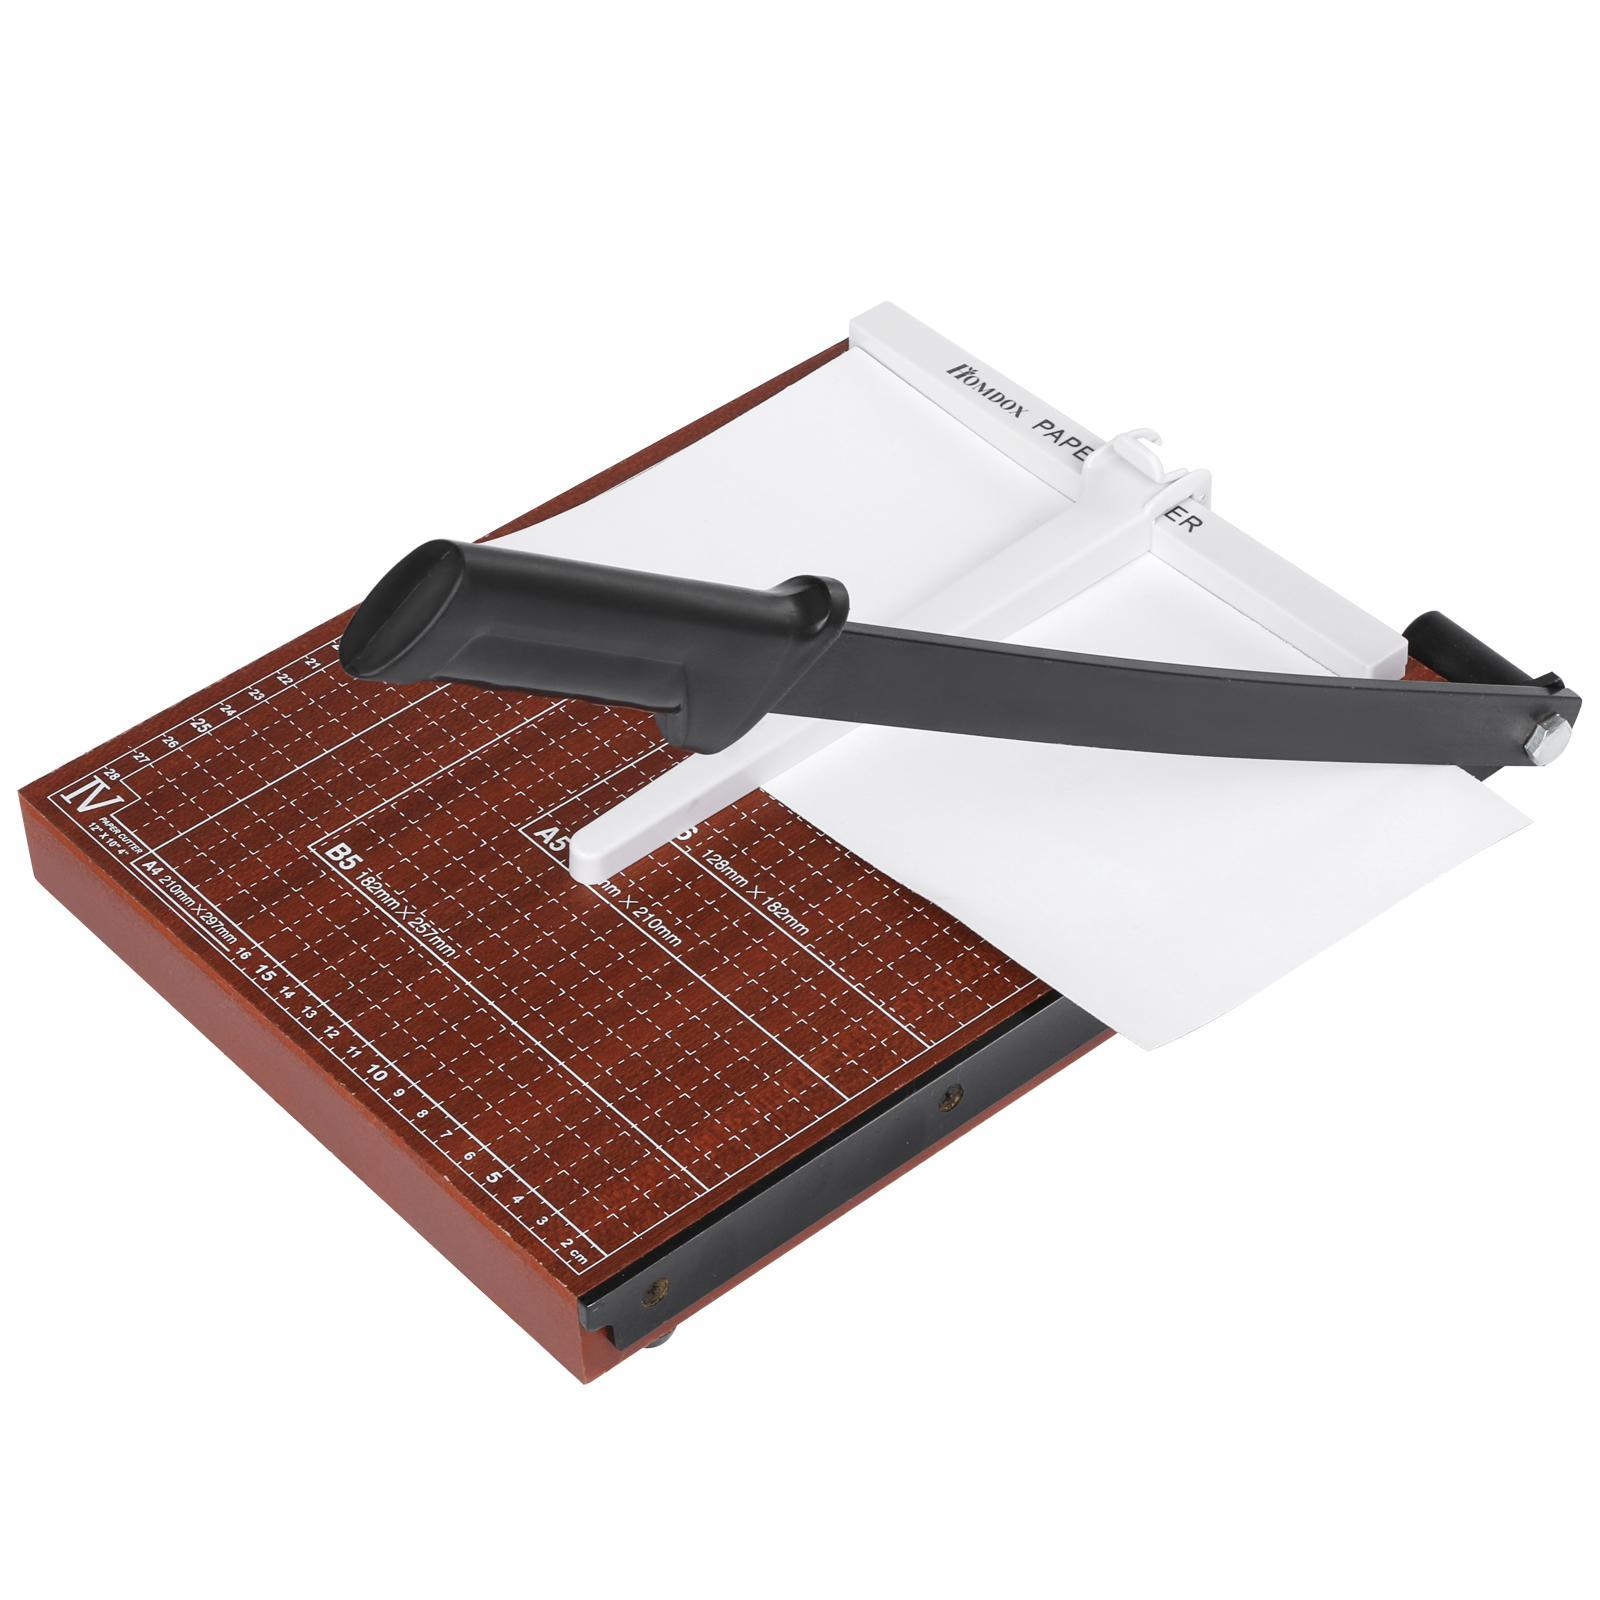 New HOMDOX Wood Professional Office Home A4 Paper Desk Tops Paper Cutter Trimmer Home, Scrap Book MachineNew HOMDOX Wood Professional Office Home A4 Paper Desk Tops Paper Cutter Trimmer Home, Scrap Book Machine